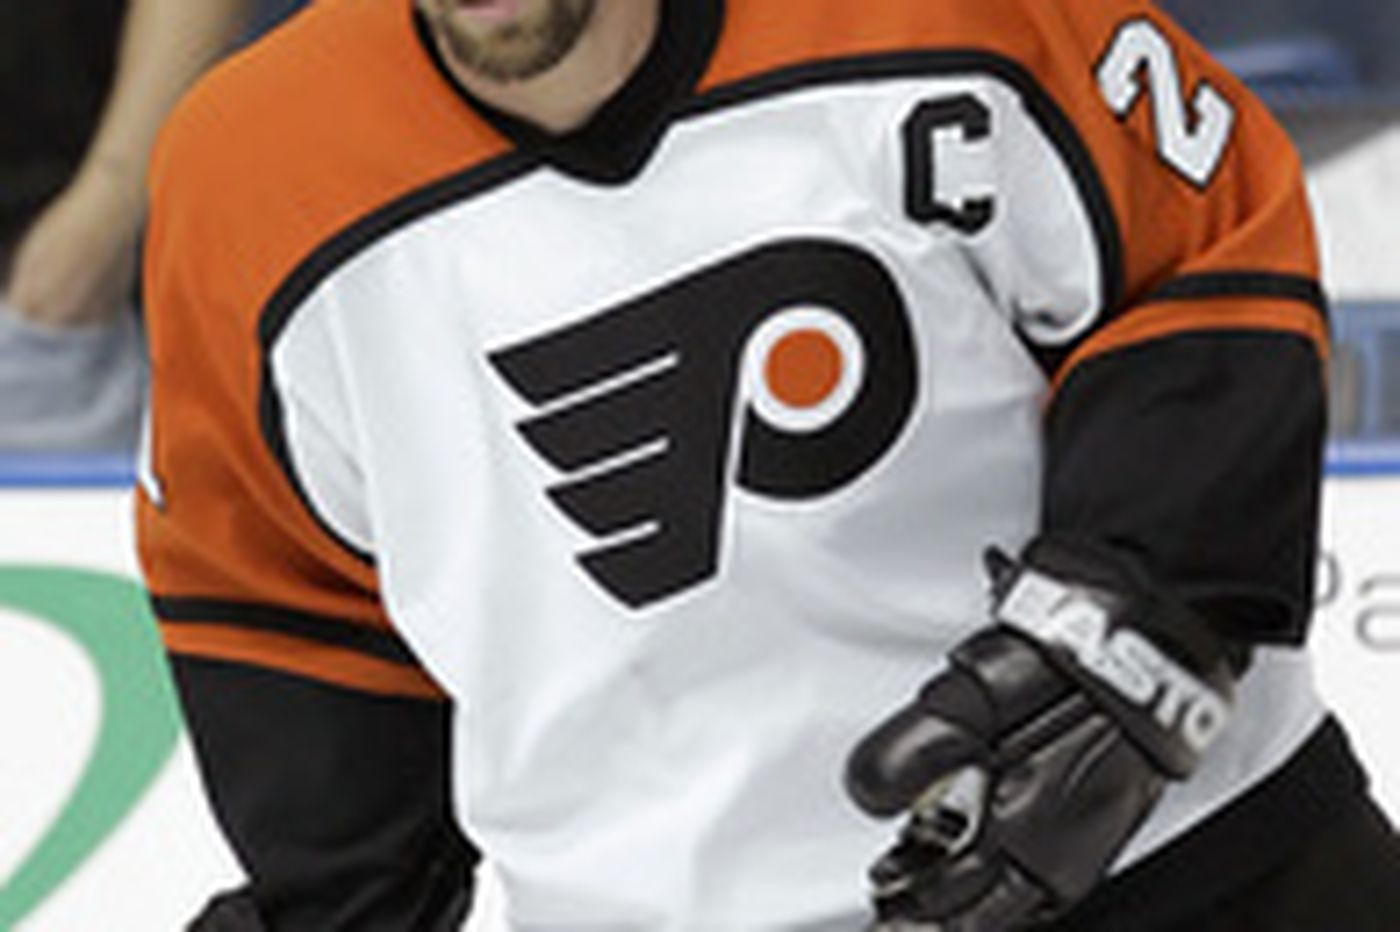 Sam Donnellon: Maybe Howard should play for Flyers